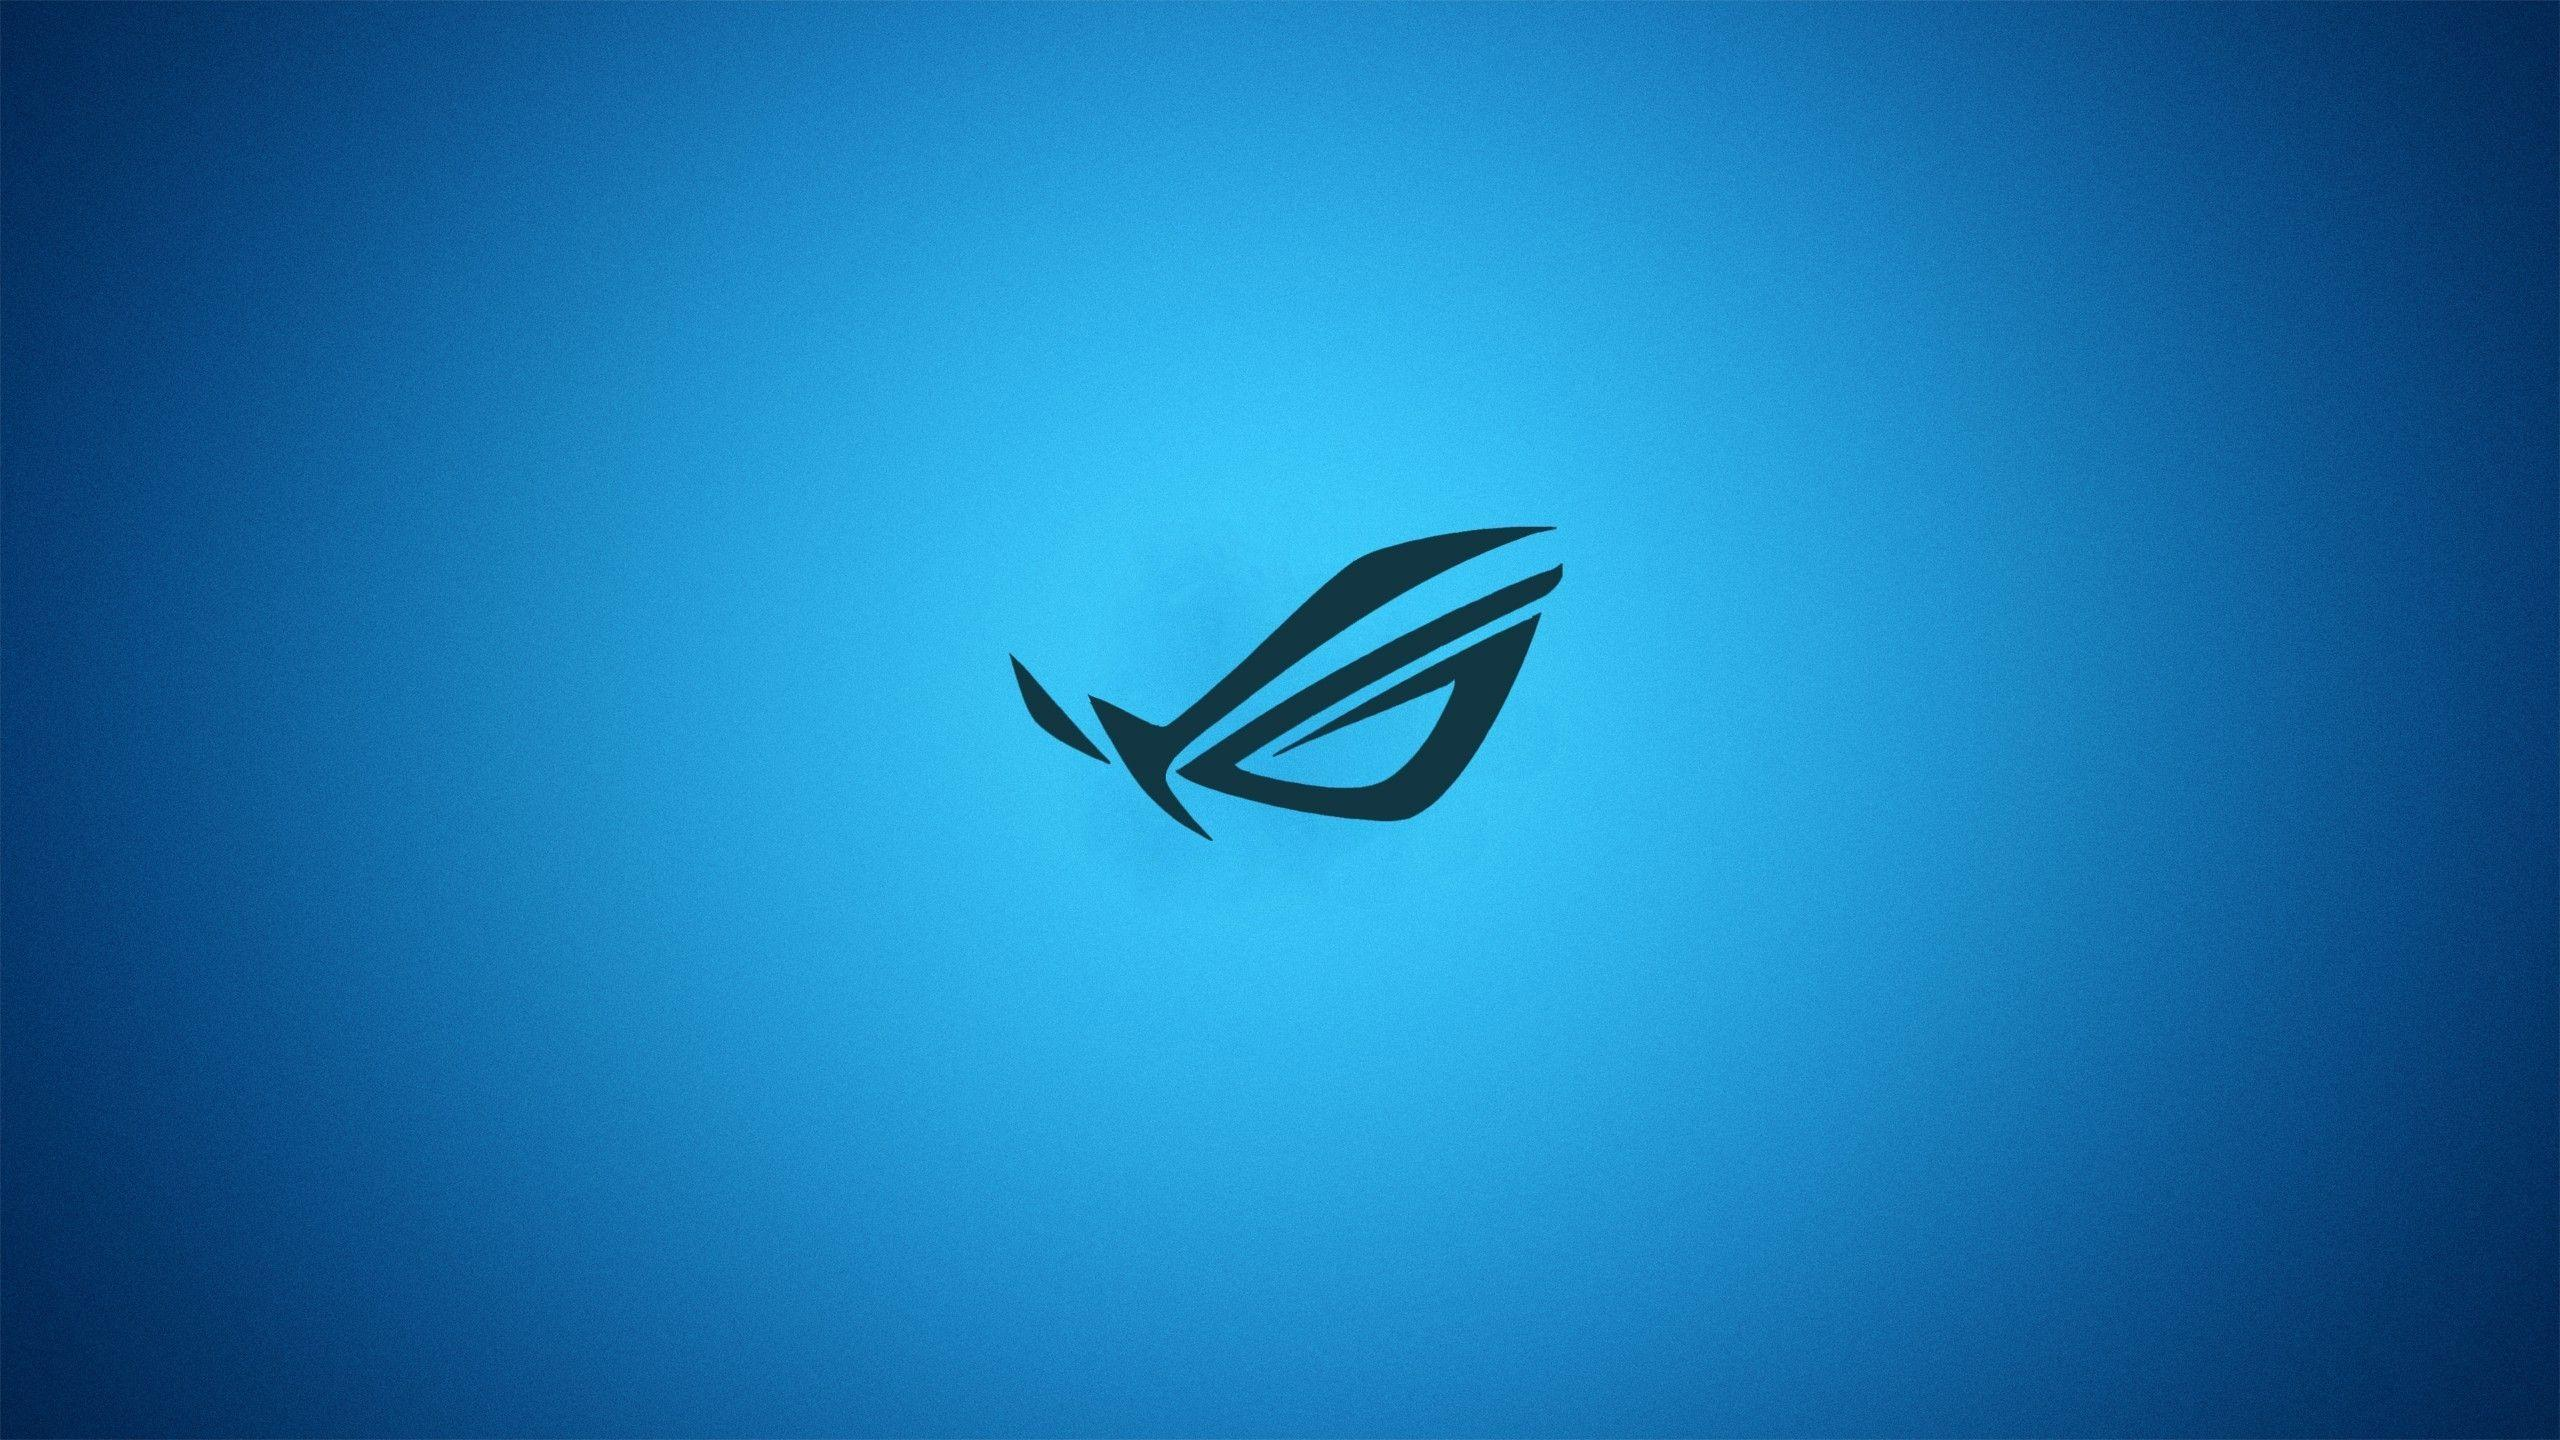 Asus Republic Of Gamers Wallpaper